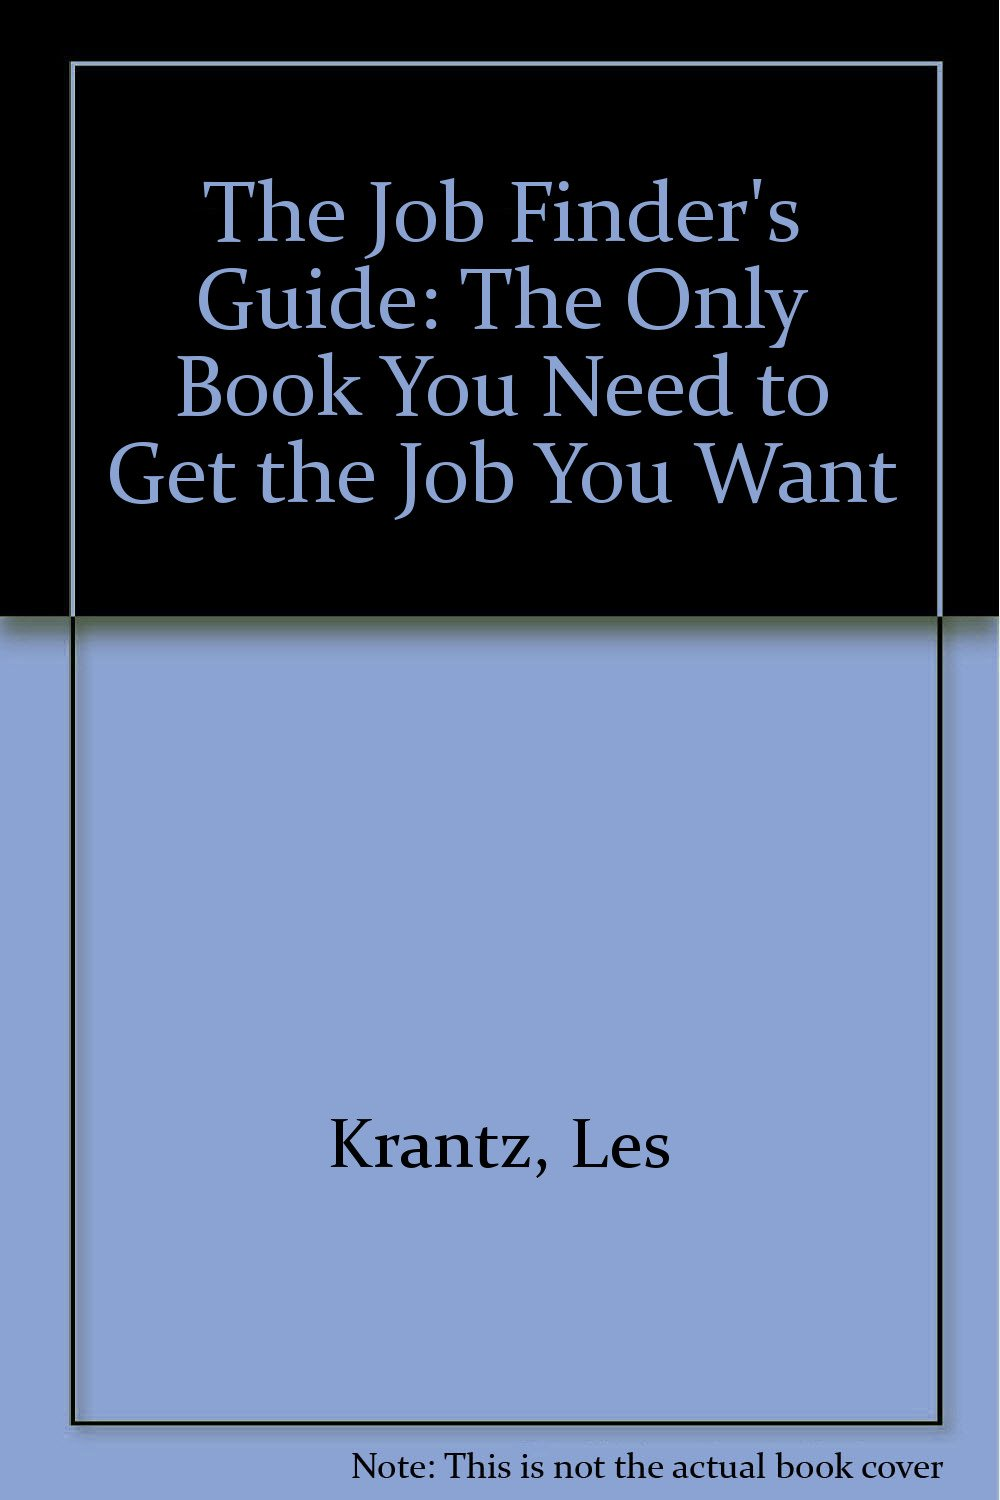 the job finder s guide the only book you need to get the job you the job finder s guide the only book you need to get the job you want les krantz tony lee 9781569802236 com books